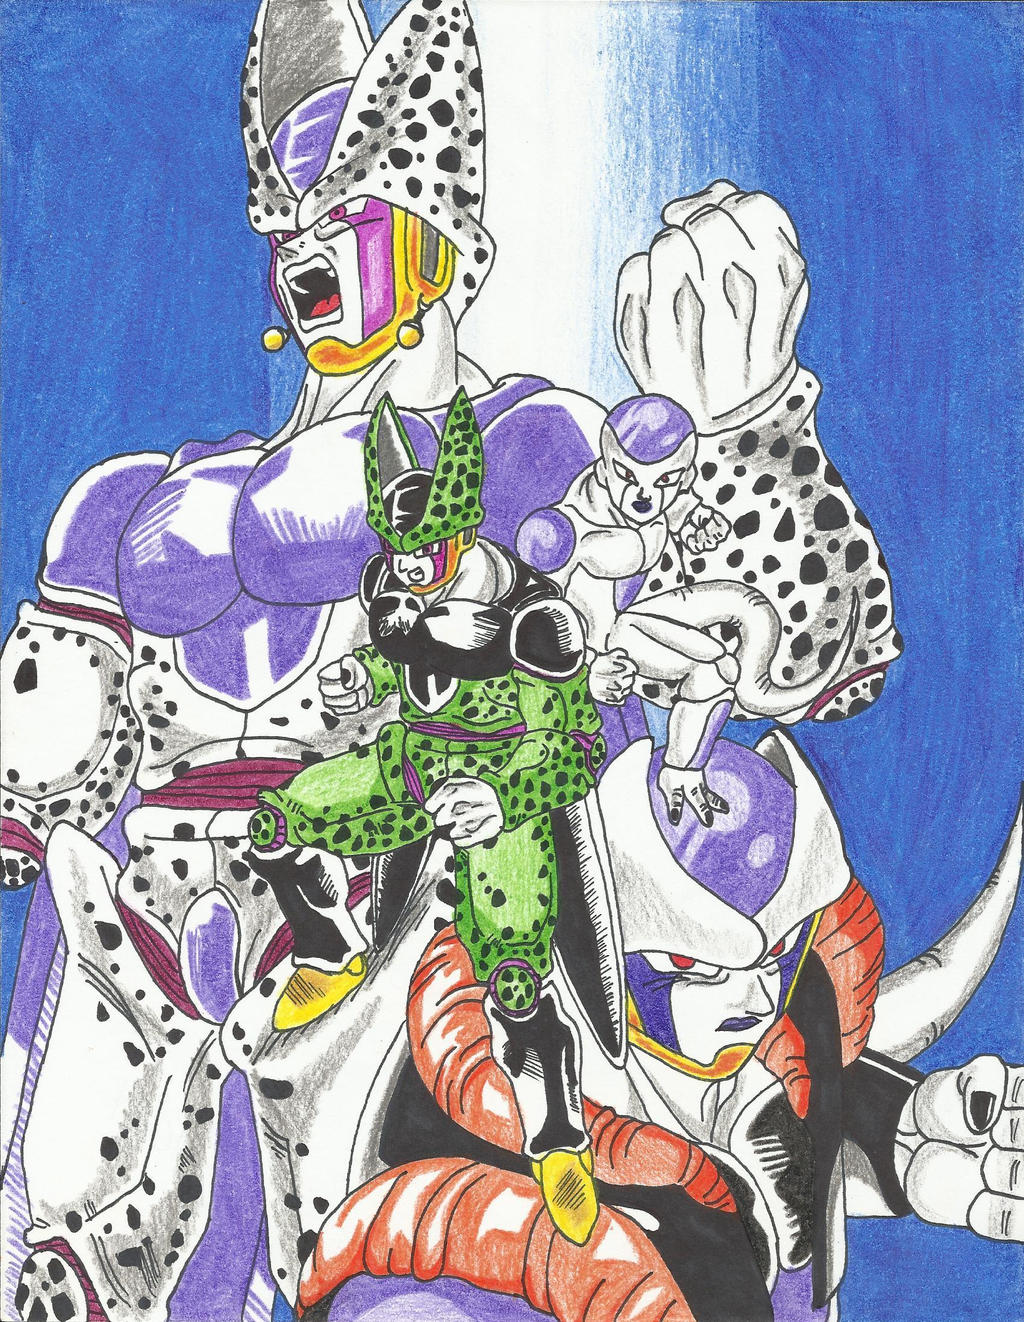 Perfect Cell and Frieza Fusion by DBZ2010 on DeviantArt